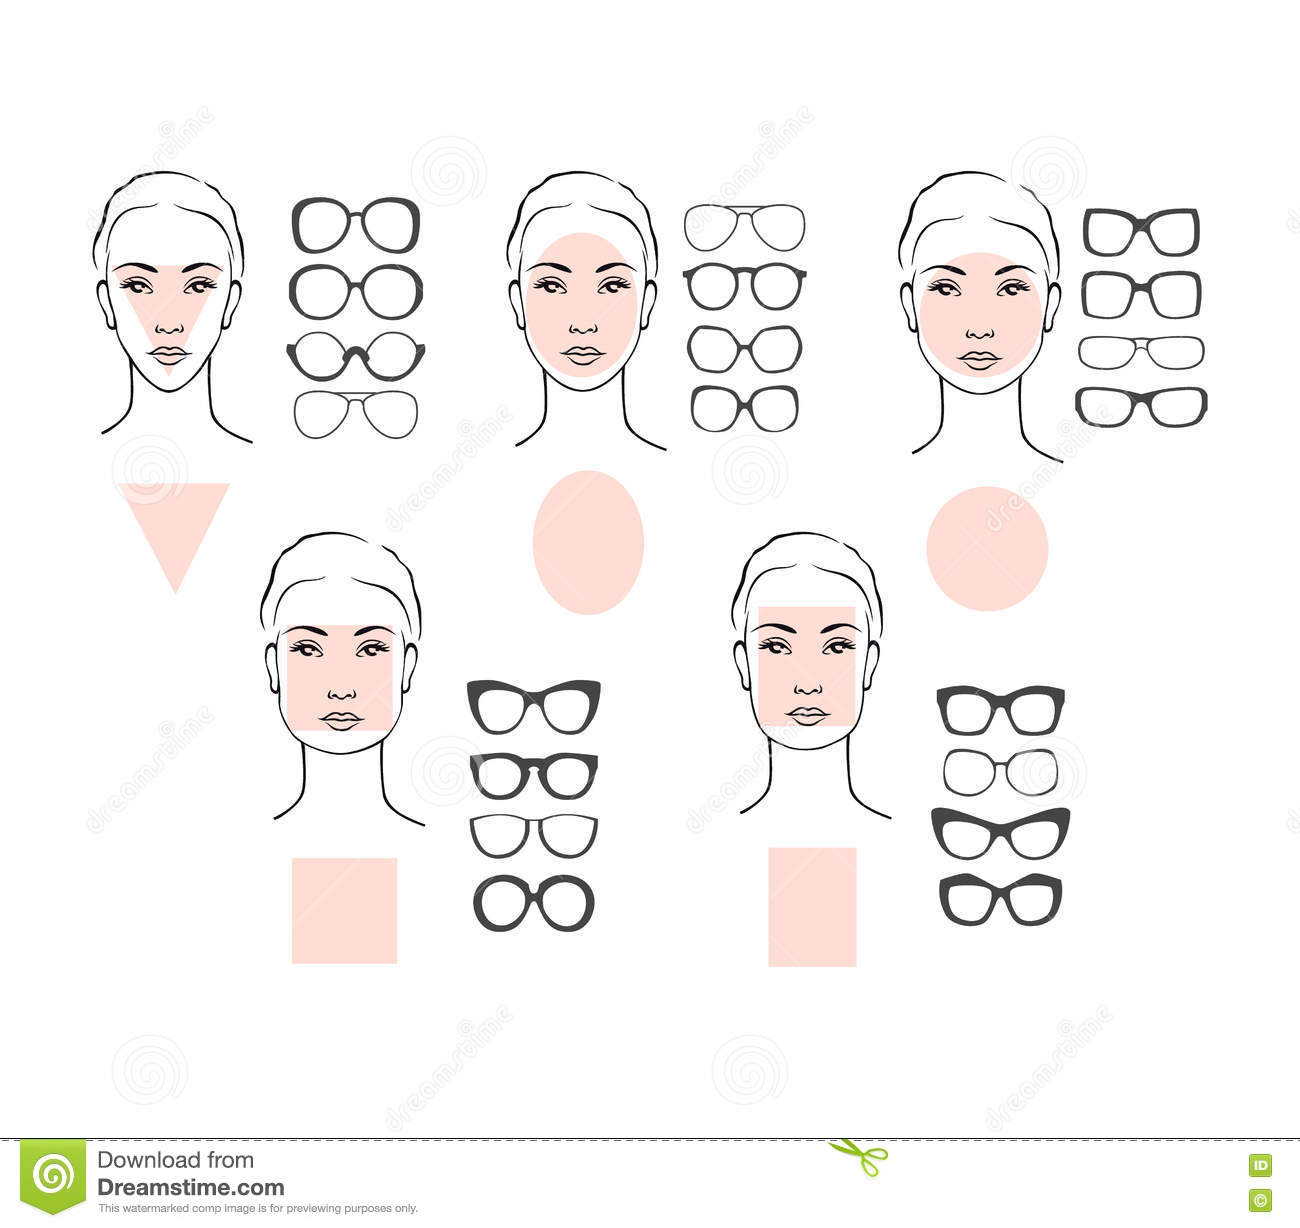 c646f5ed96 Woman face types and sunglasses. Beauty vector illustration of sunglasses  for different faces. Five